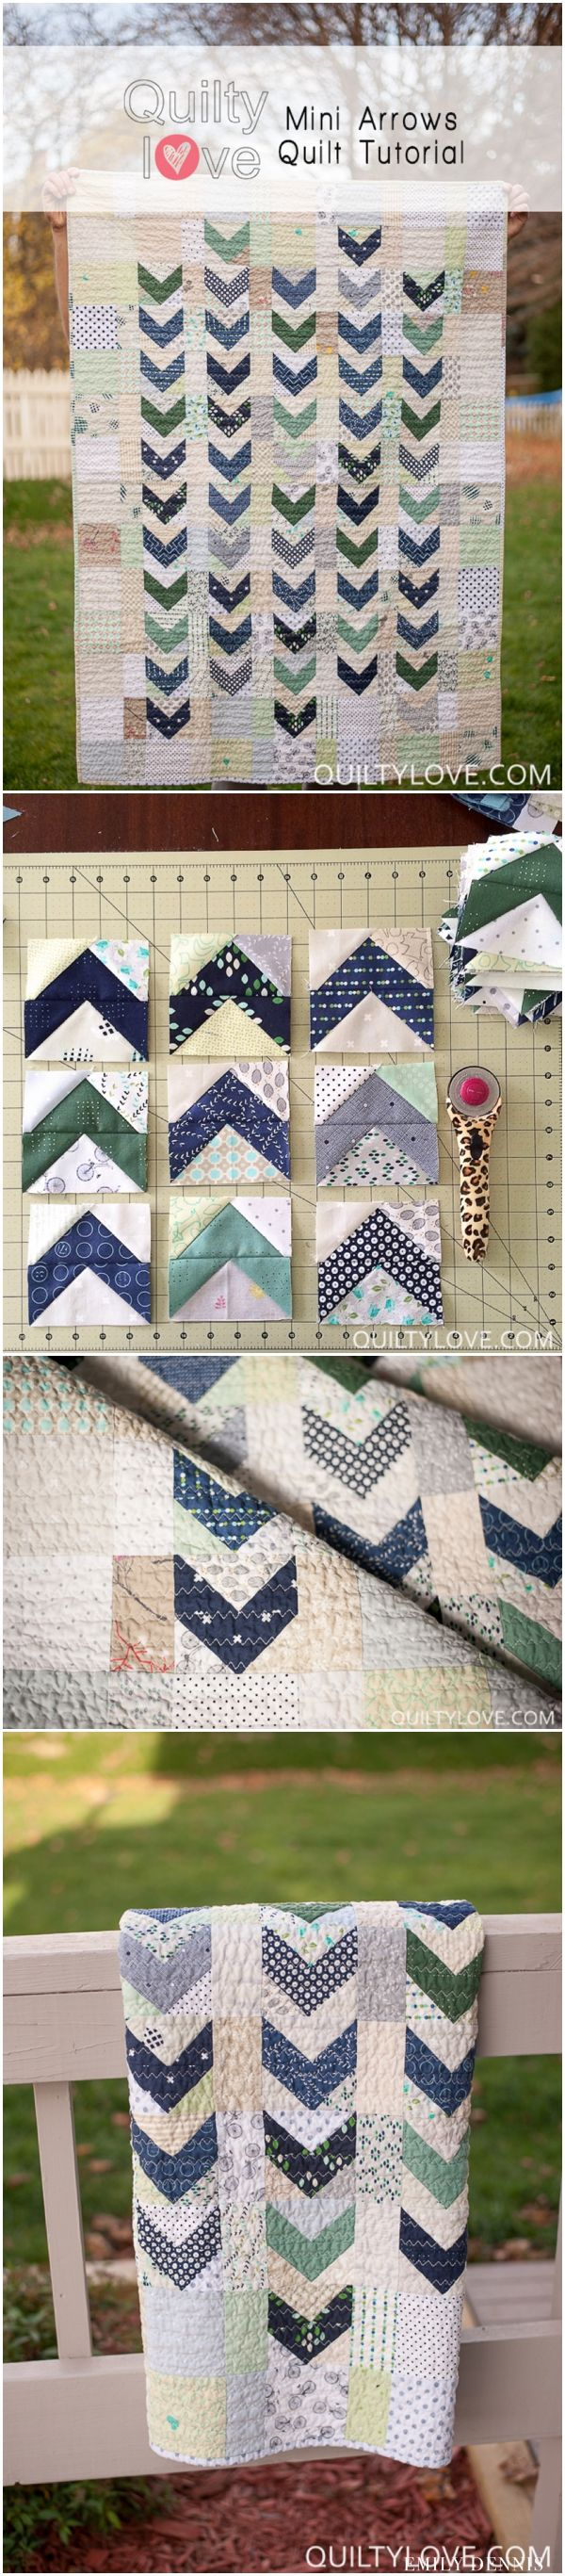 Flying geese arrows quilt by emily of quiltylove.com. Navy arrows with low volume scrappy background. Click through for cutting sizes.